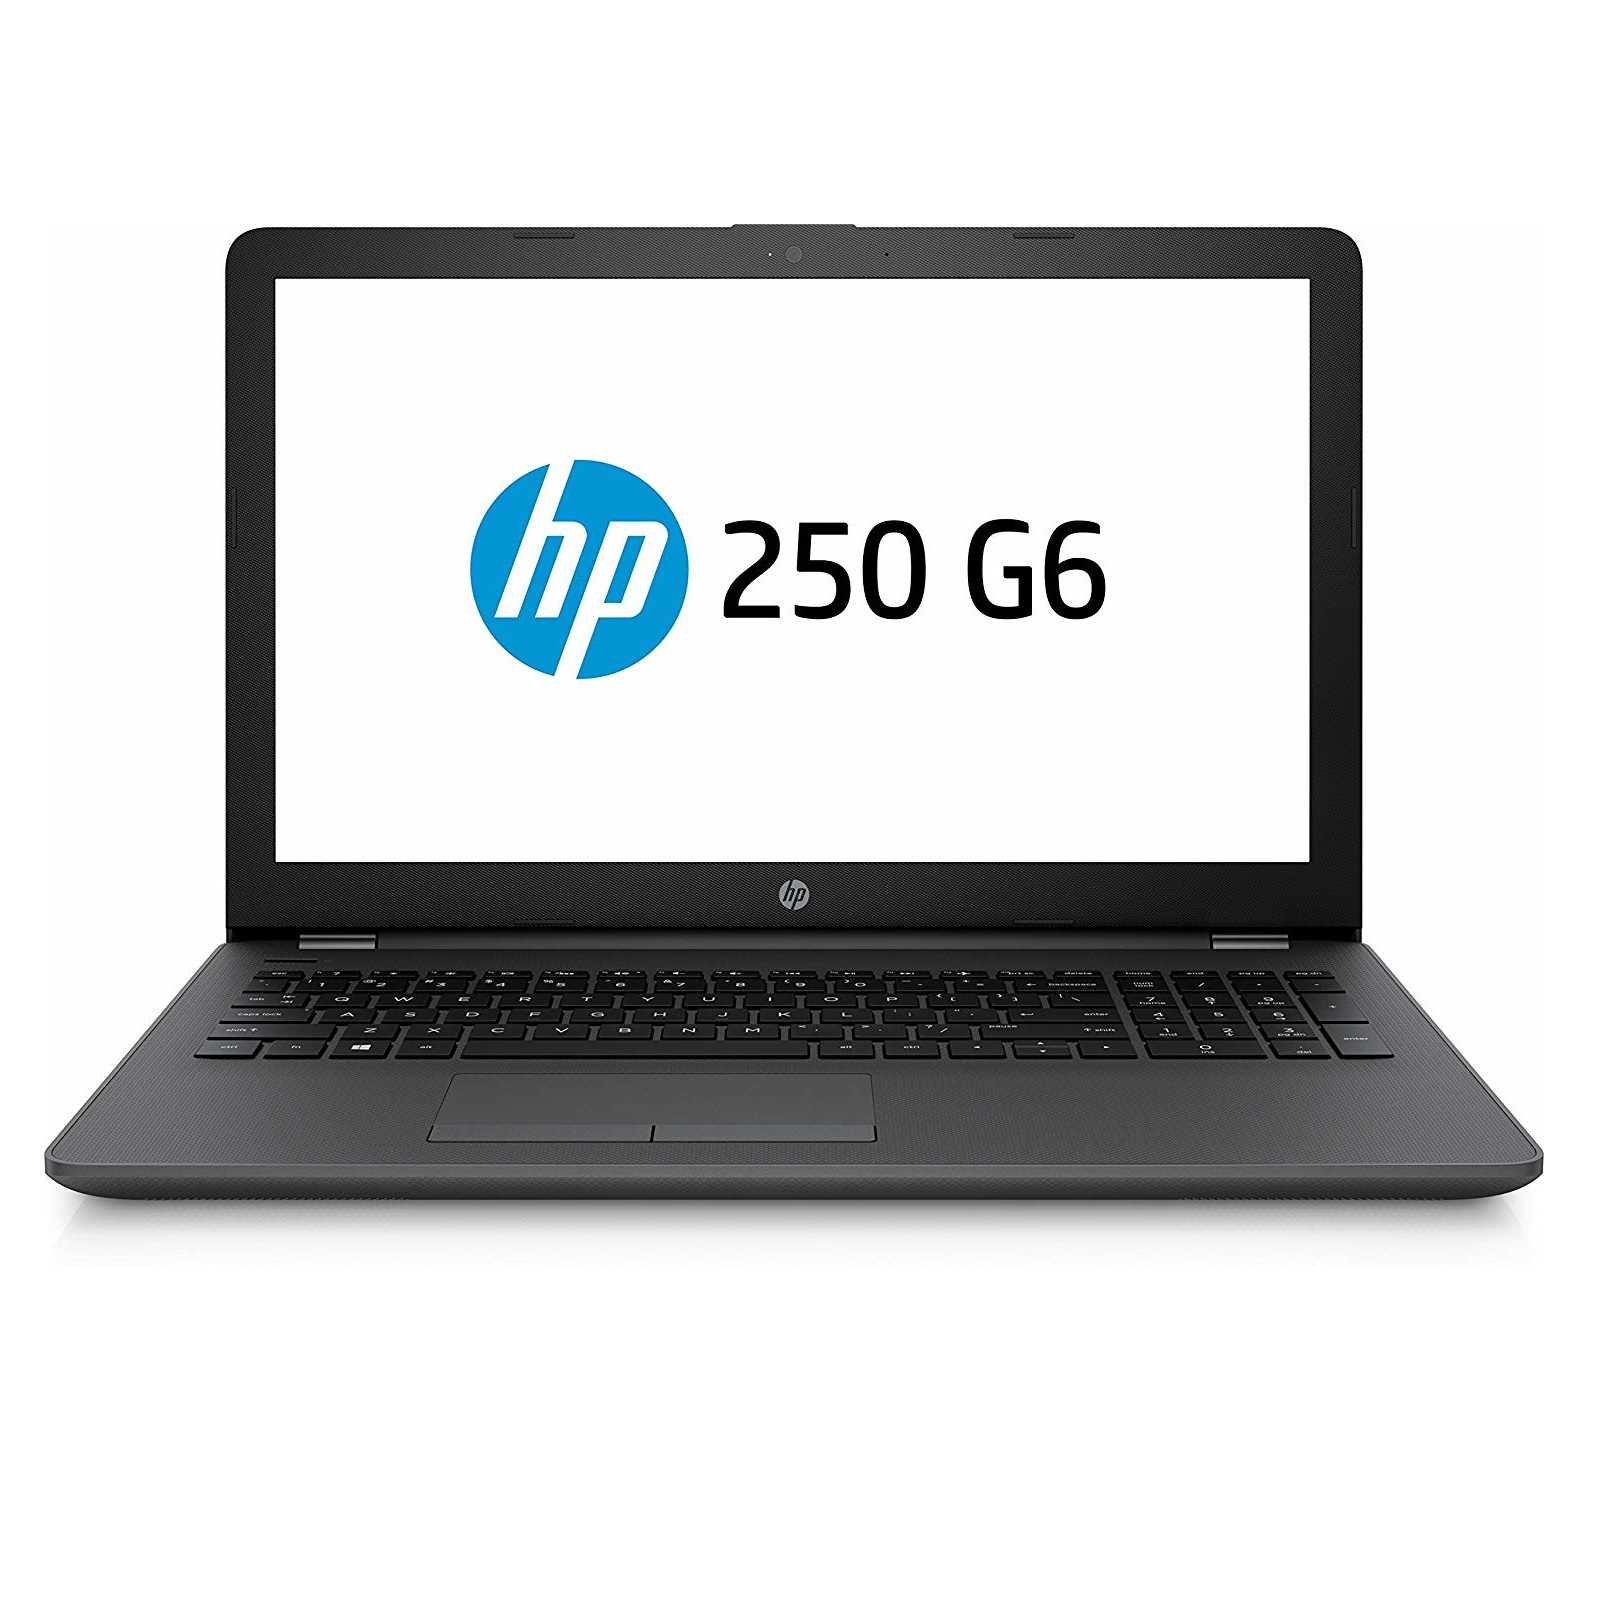 HP 250 G6 2RC09PA Laptop